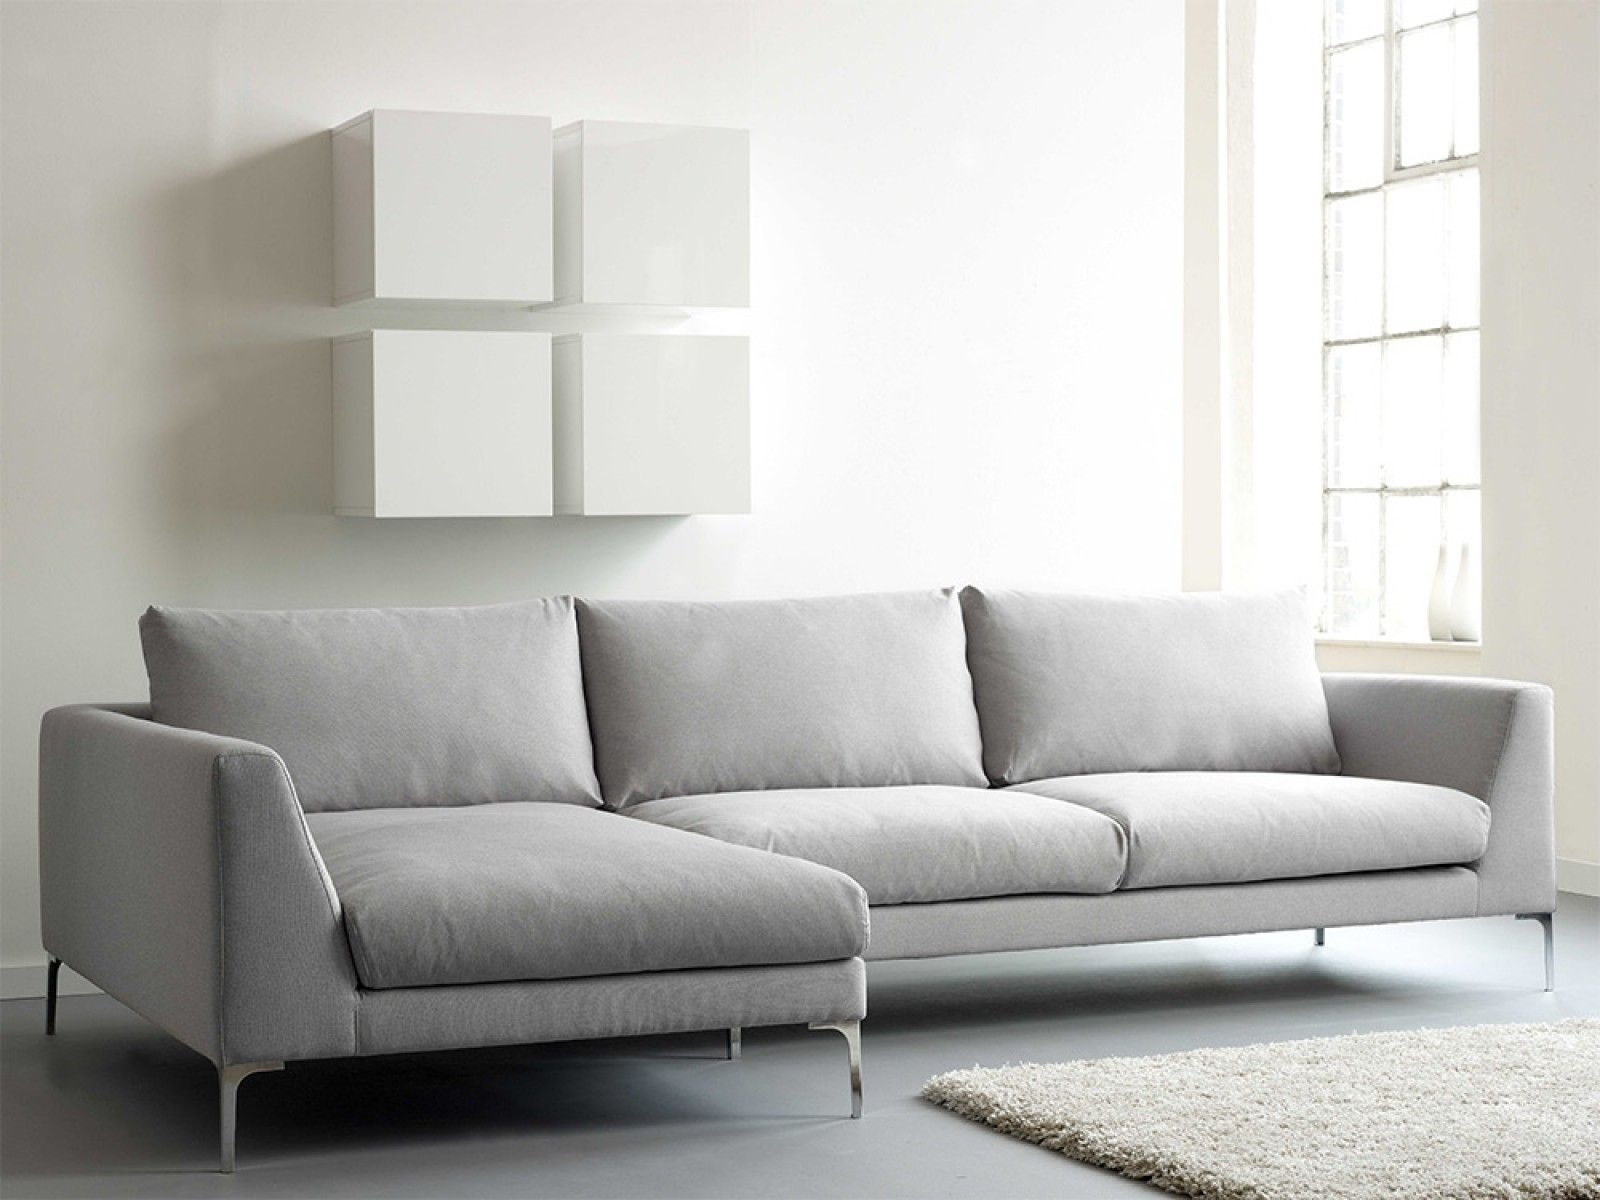 Whisper Sofa at sofa world Love this colour and corner sofa